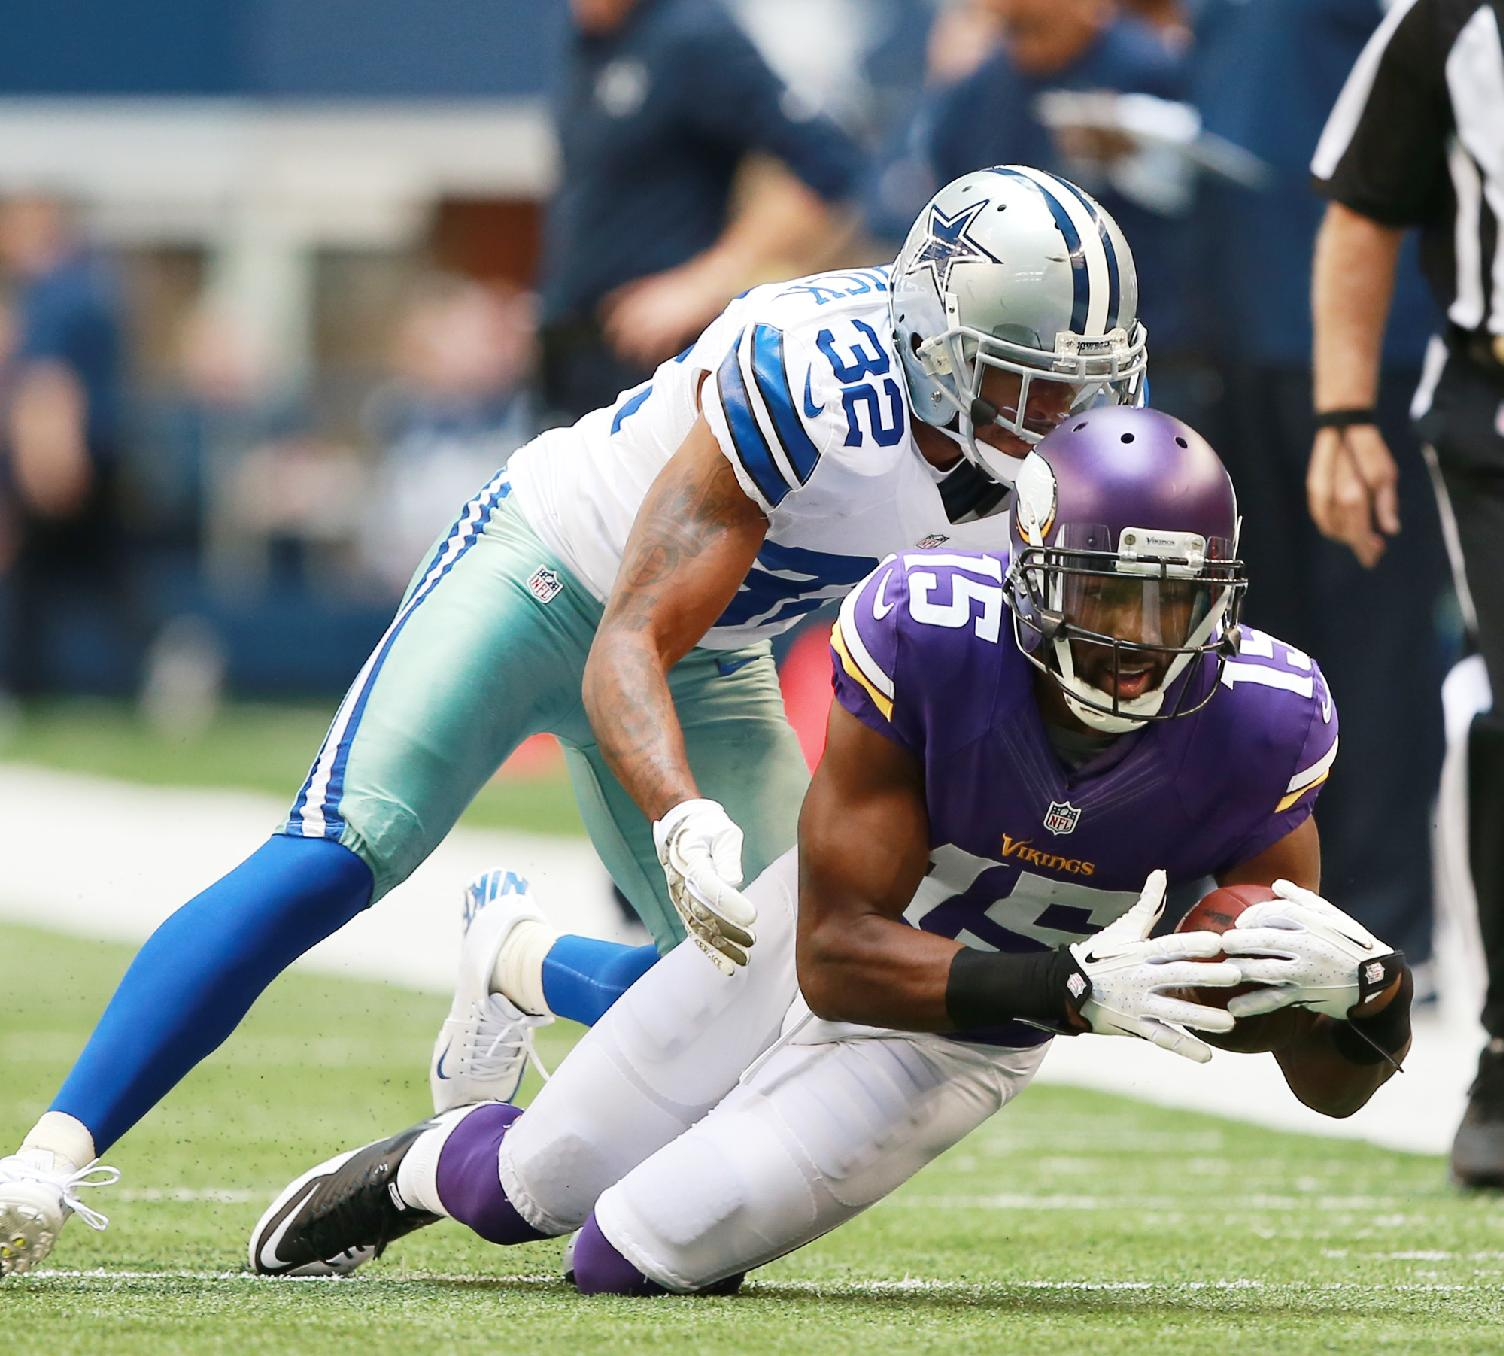 Minnesota Vikings wide receiver Greg Jennings (15) is tackled by Dallas Cowboys cornerback Orlando Scandrick (32) during the first half of an NFL football game Sunday, Nov. 3, 2013, in Arlington, Texas